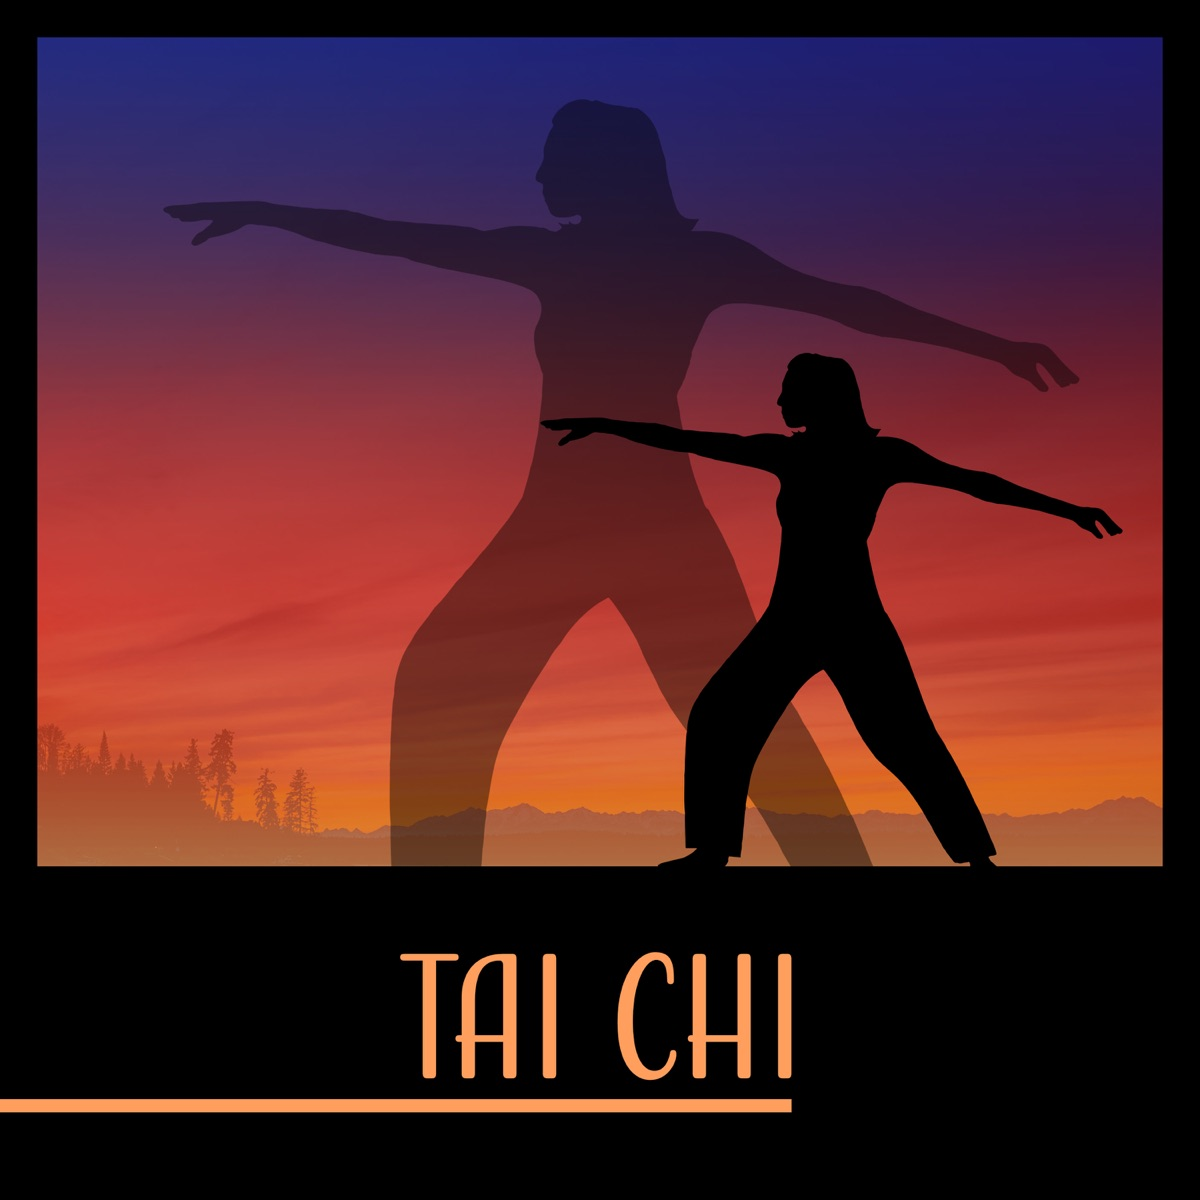 Tai Chi: The Best Chinese Instrumental Music, Relaxing Background